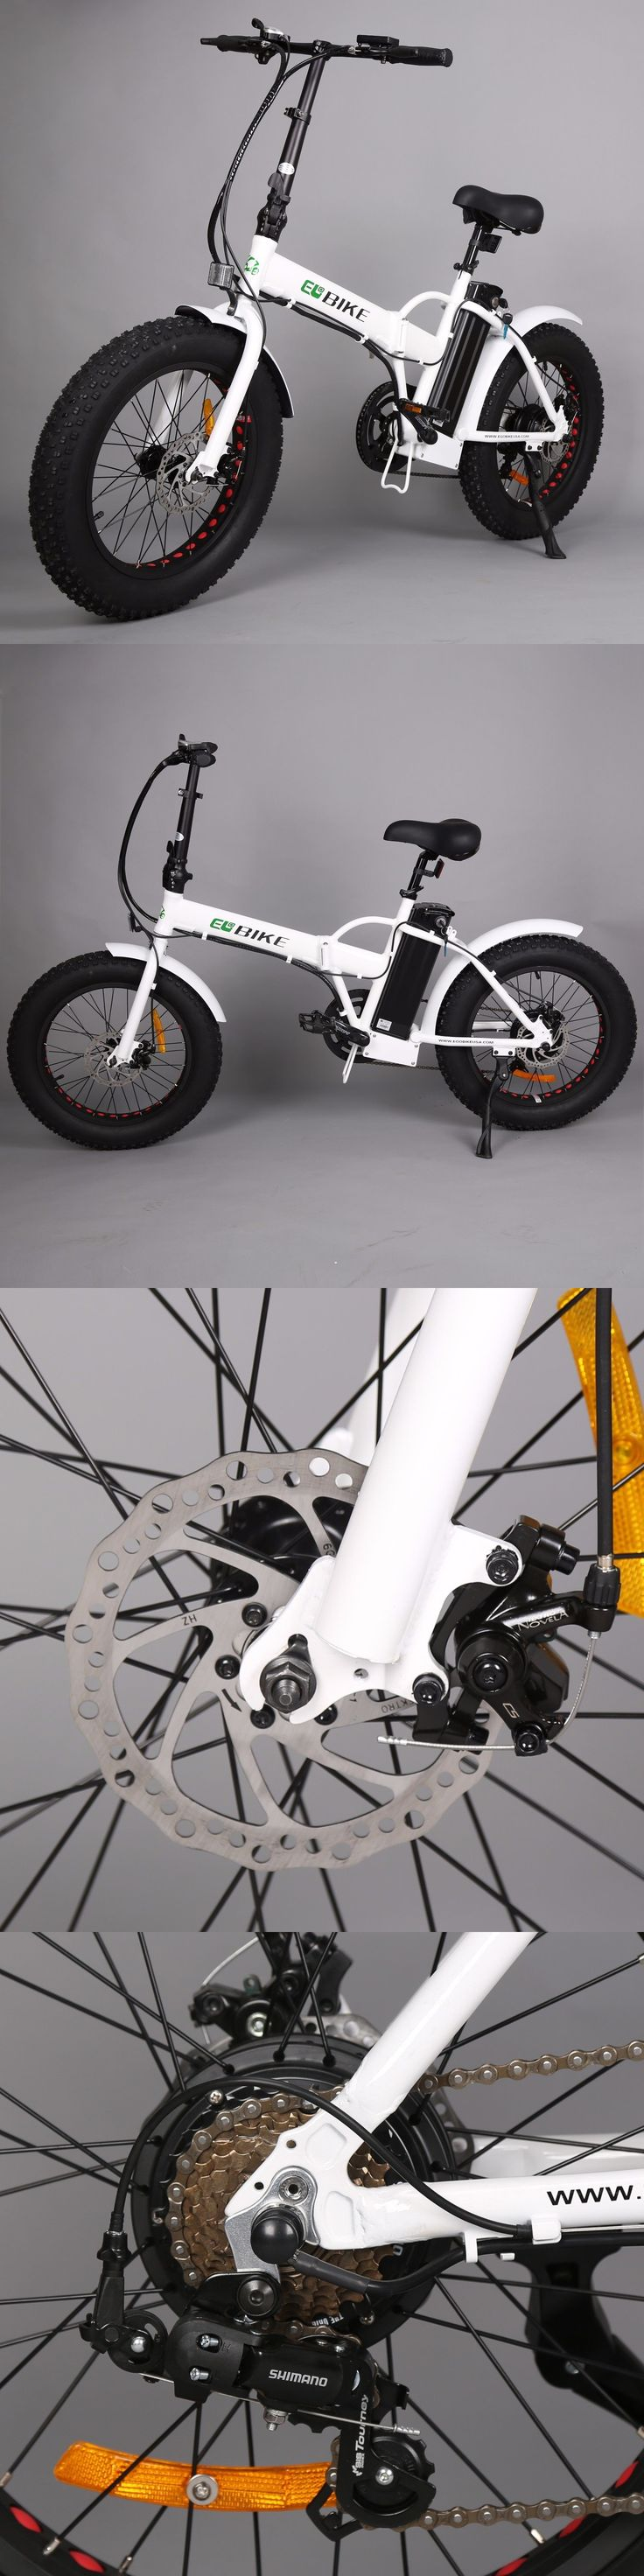 Electric Bicycles 74469: White Folding Fat Tire E-Bike 350W 20 Mountain Bike Electric Bicycle Moped -> BUY IT NOW ONLY: $780 on eBay!